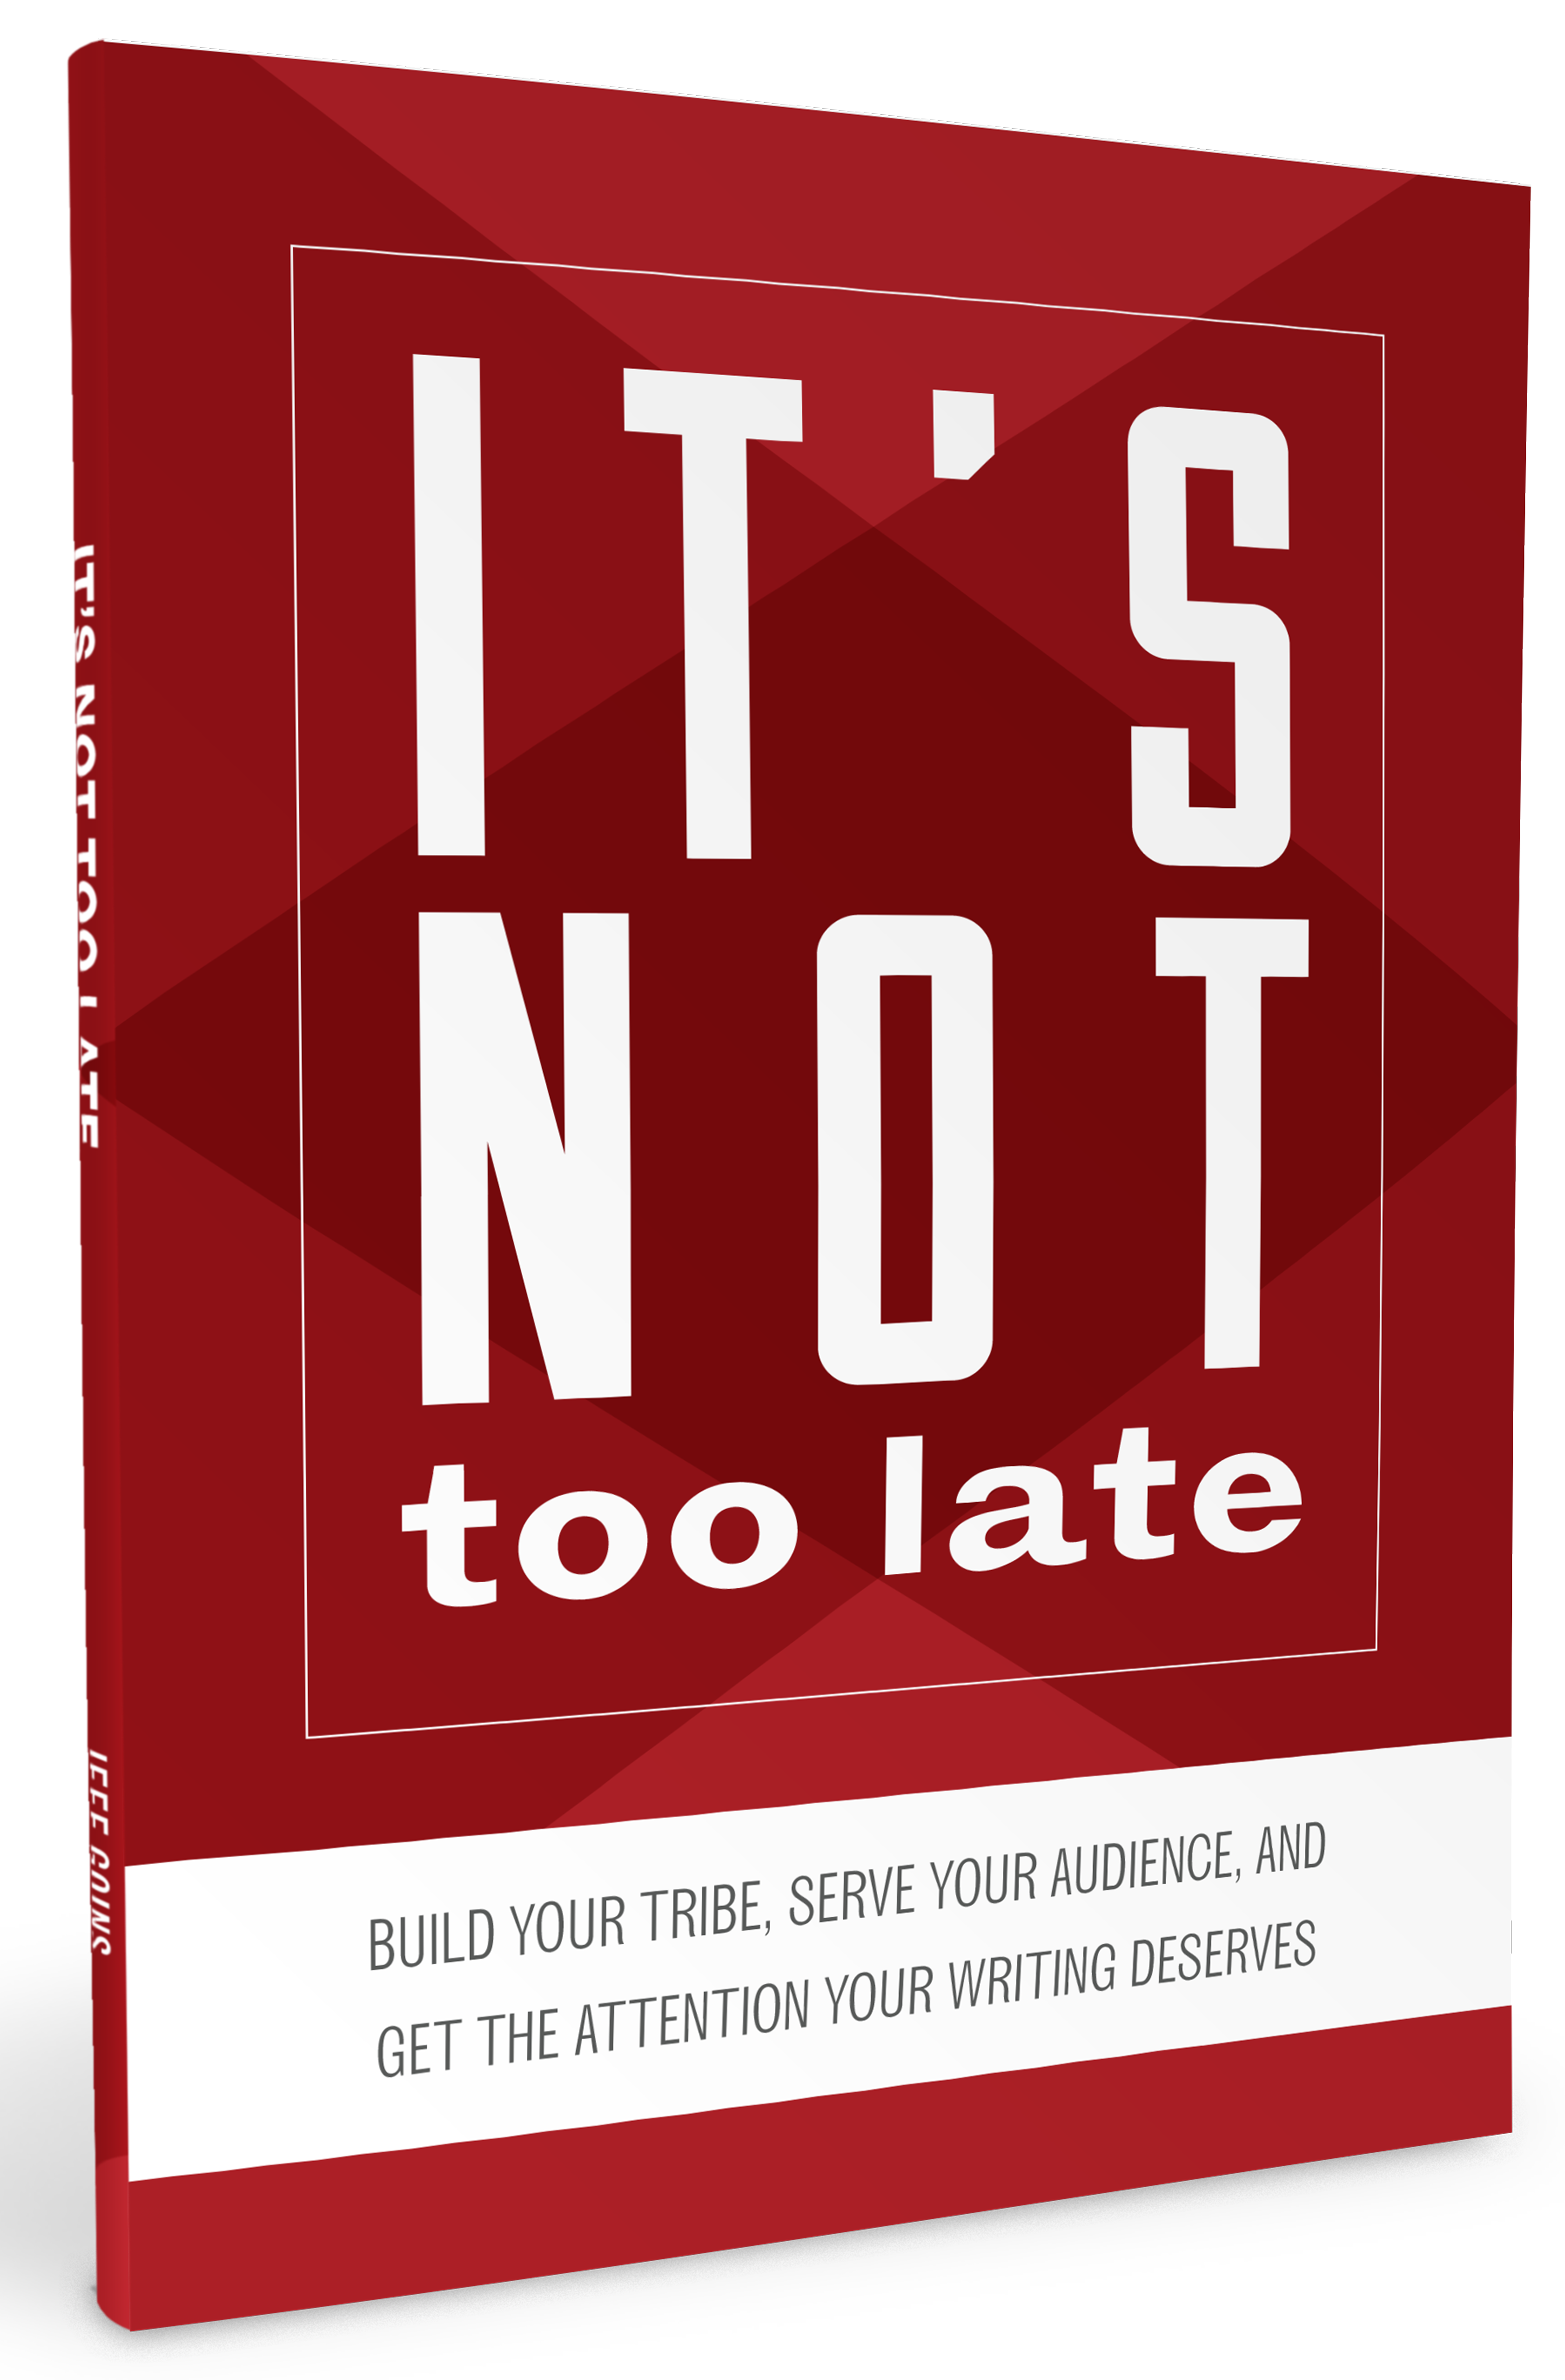 the best time to become a writer. In this new, free eBook, he shares